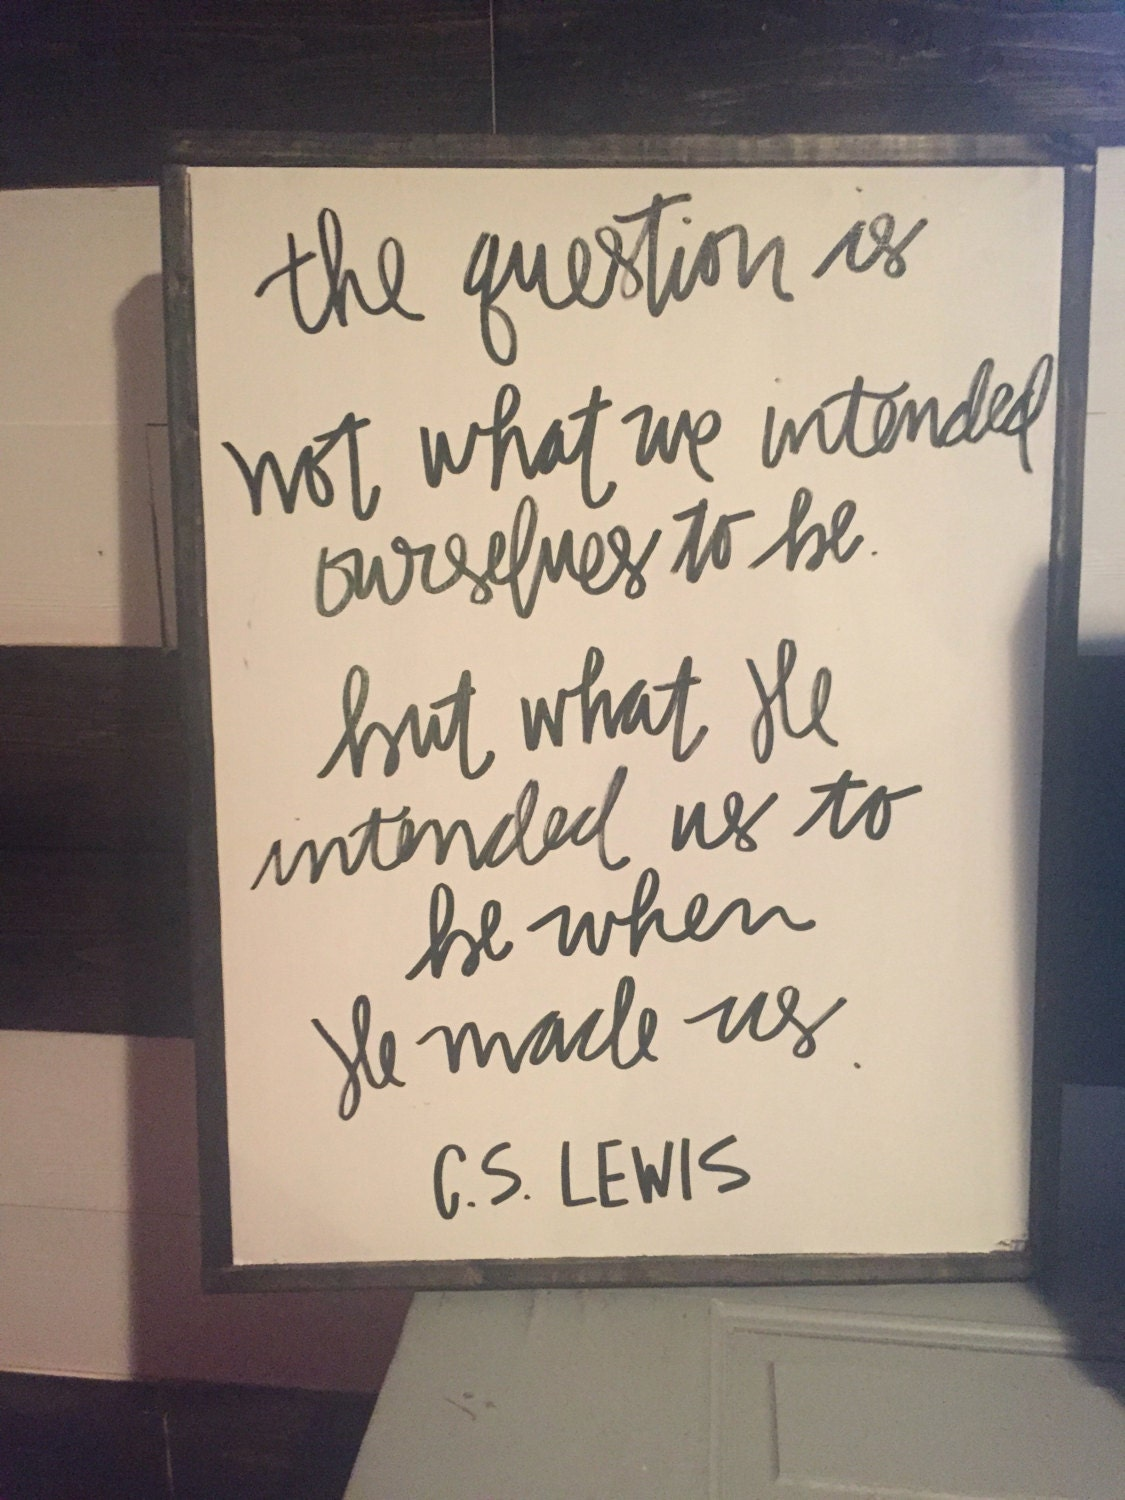 Cs lewis quotes cs lewis signs home decor wood decor for Home decor quotes signs